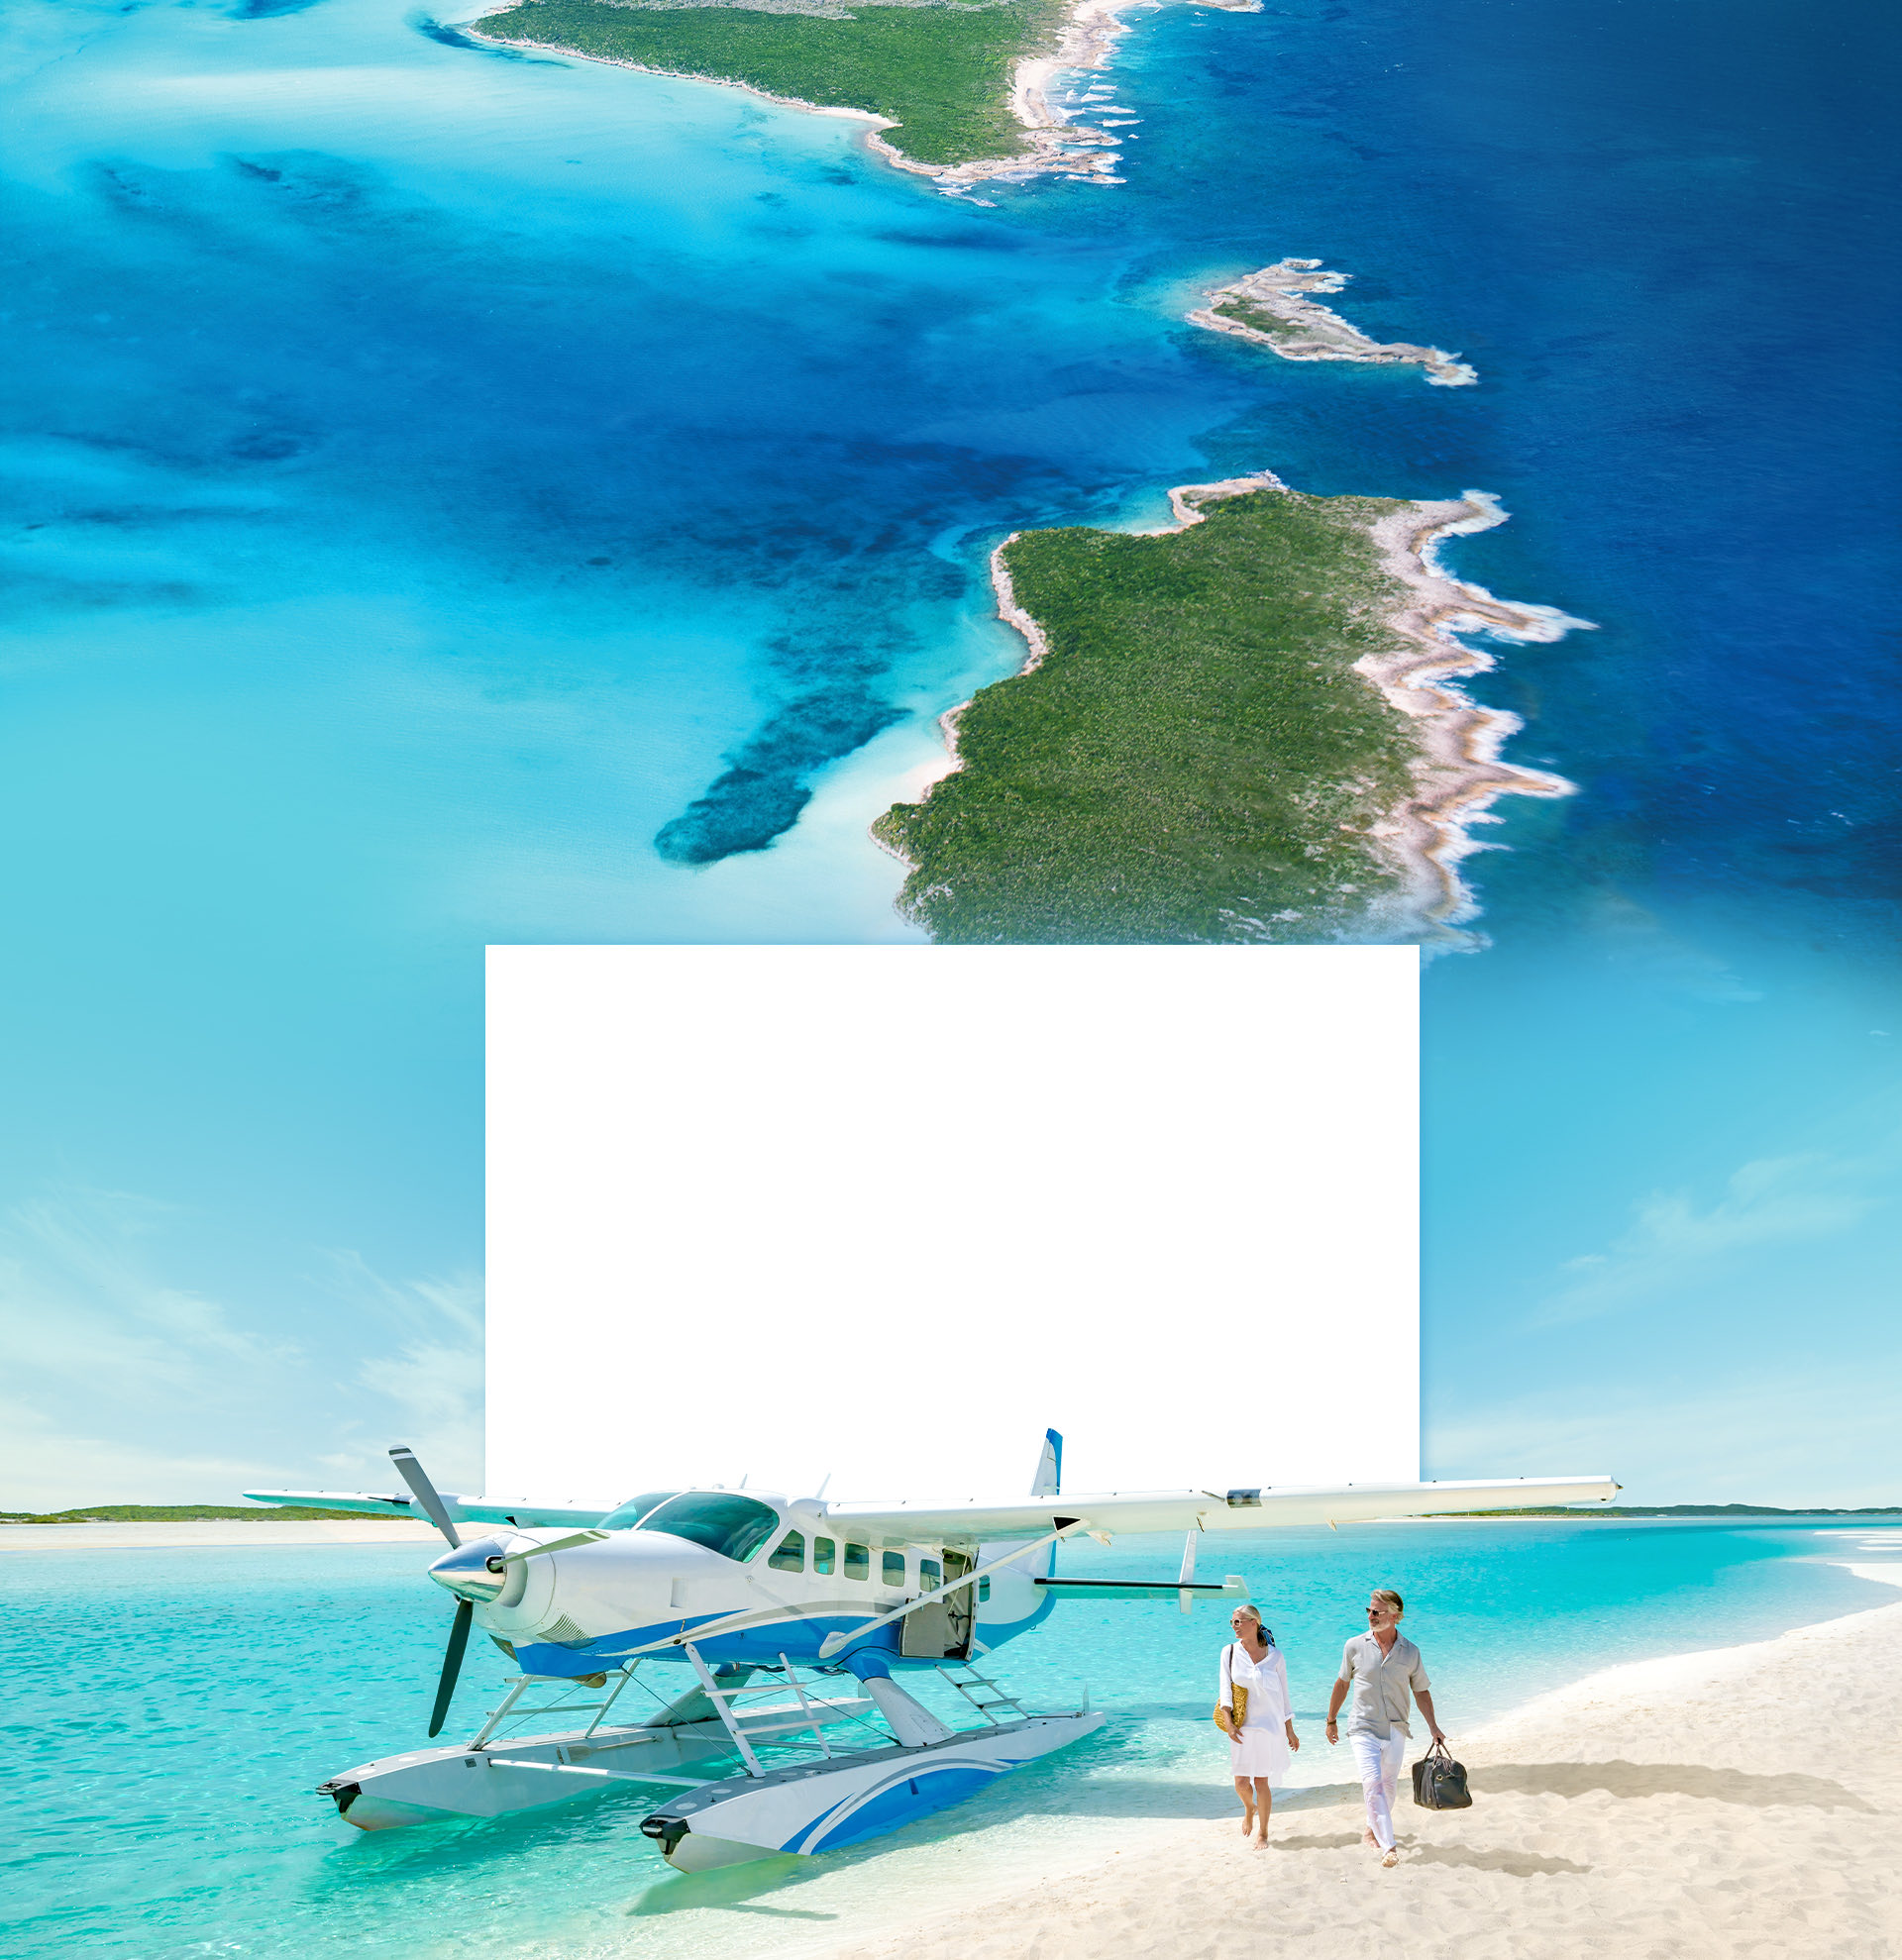 Bahamas lanscape with a couple leaving an airplane